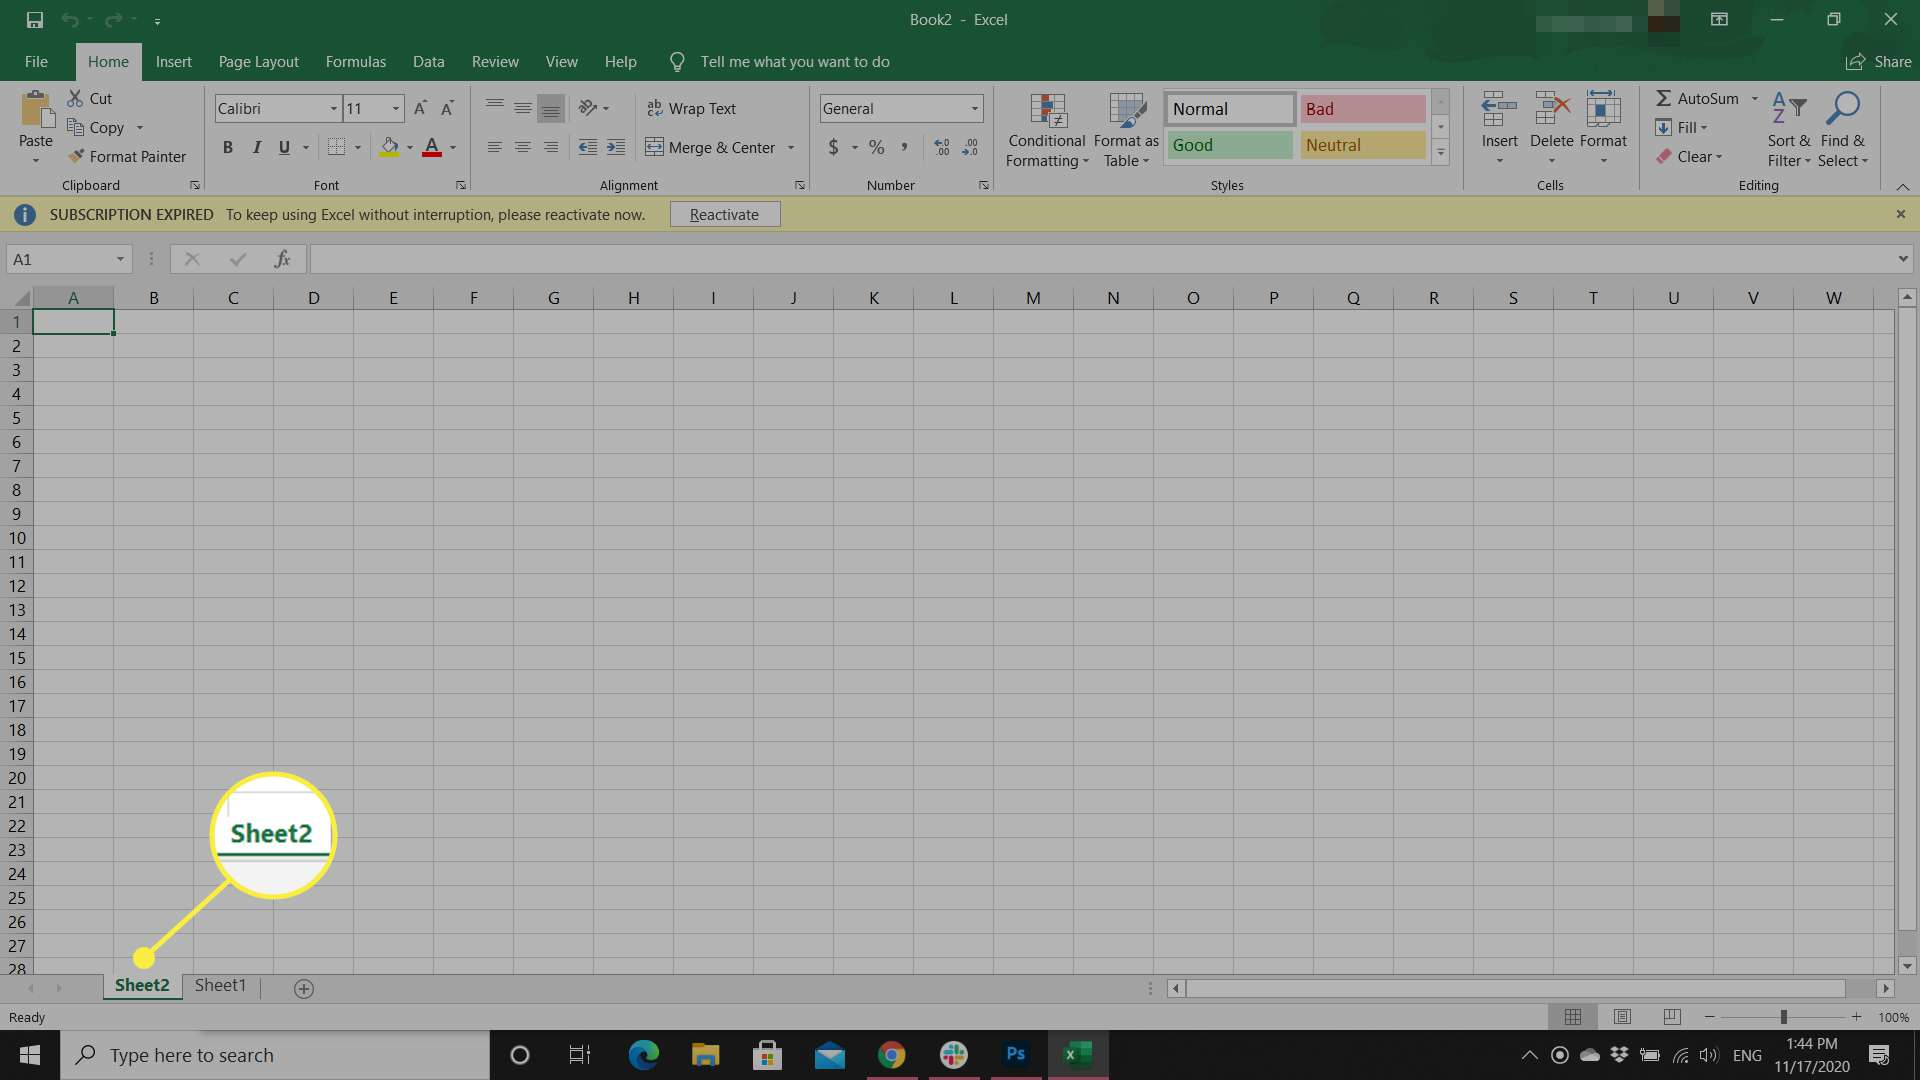 An Excel user creates a new worksheet